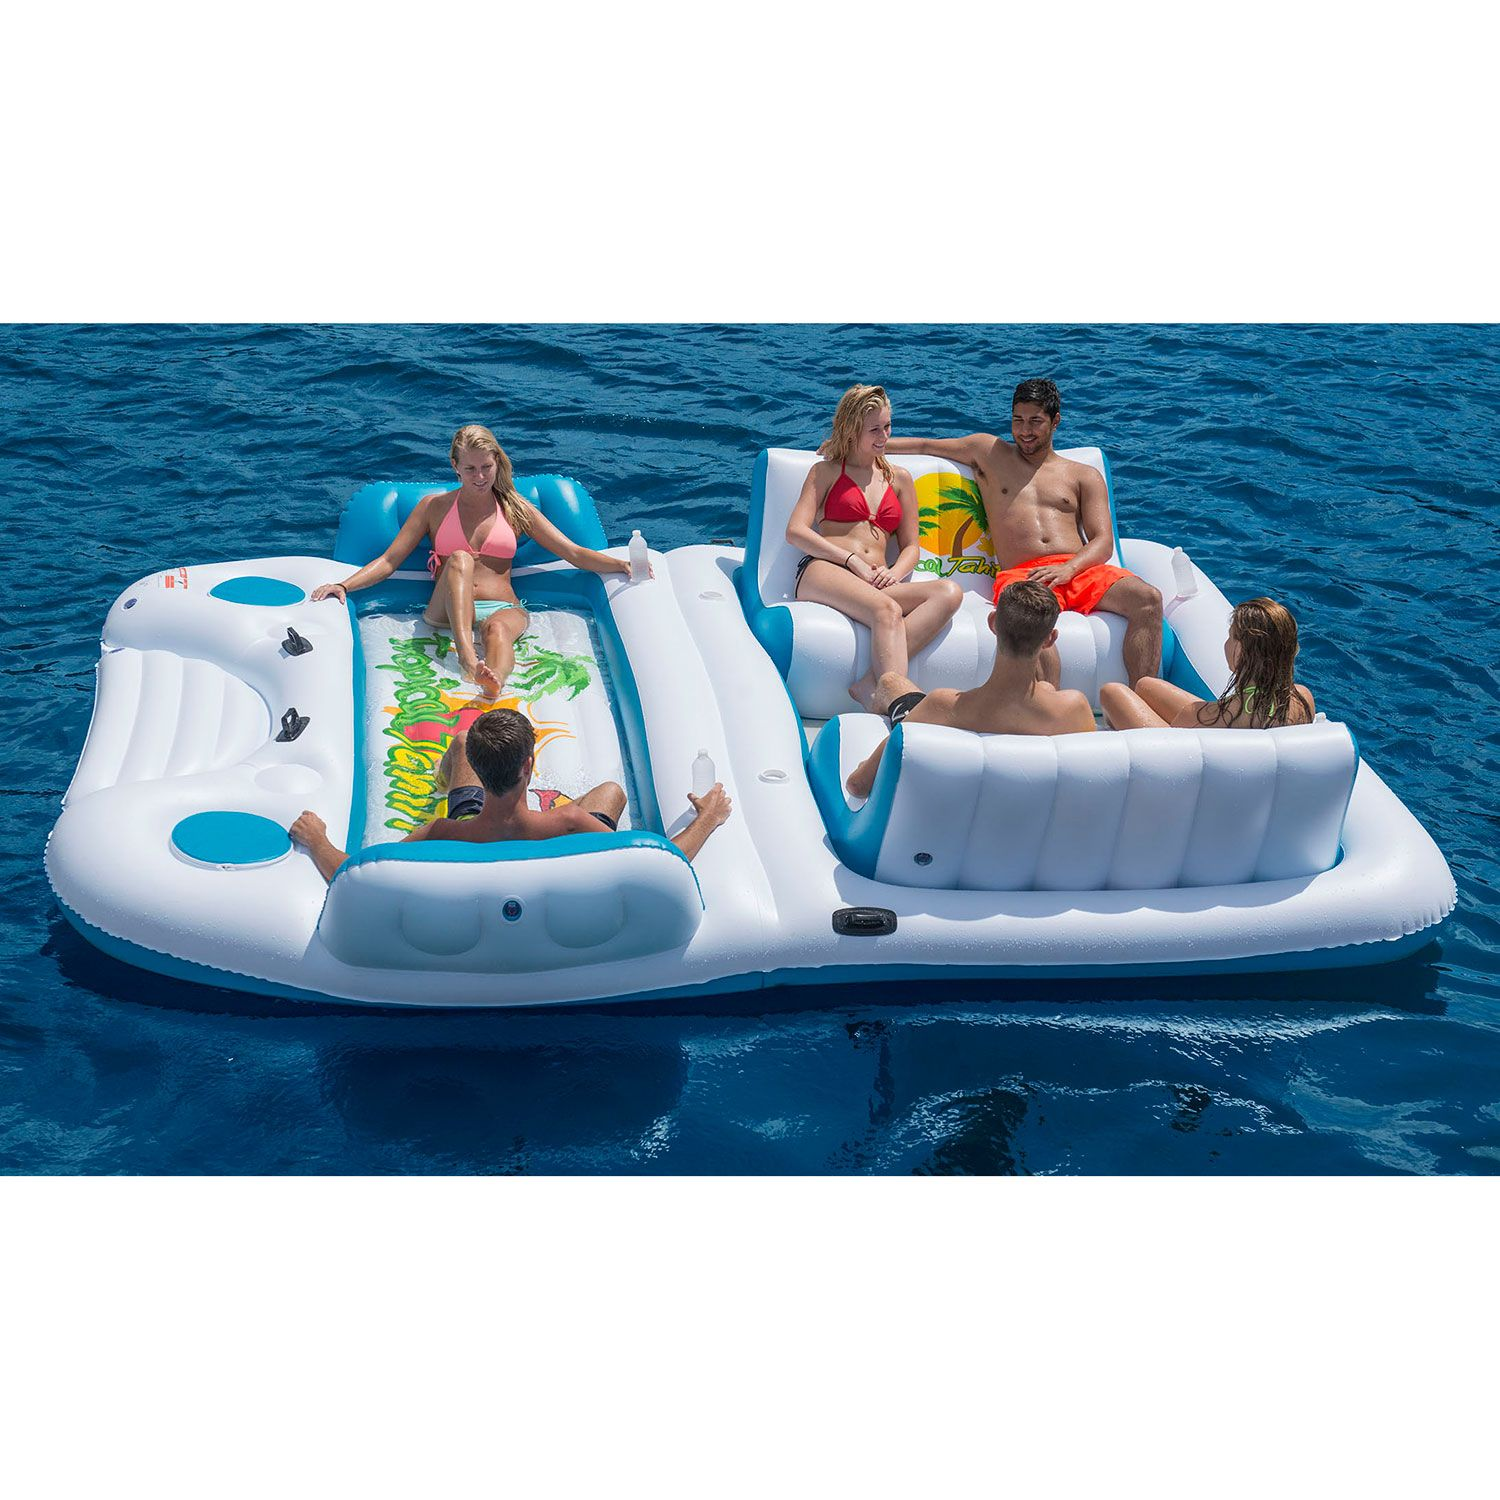 Find great deals on eBay for Tropical Tahiti Floating Island Inflatable Pool Float. Shop with confidence.